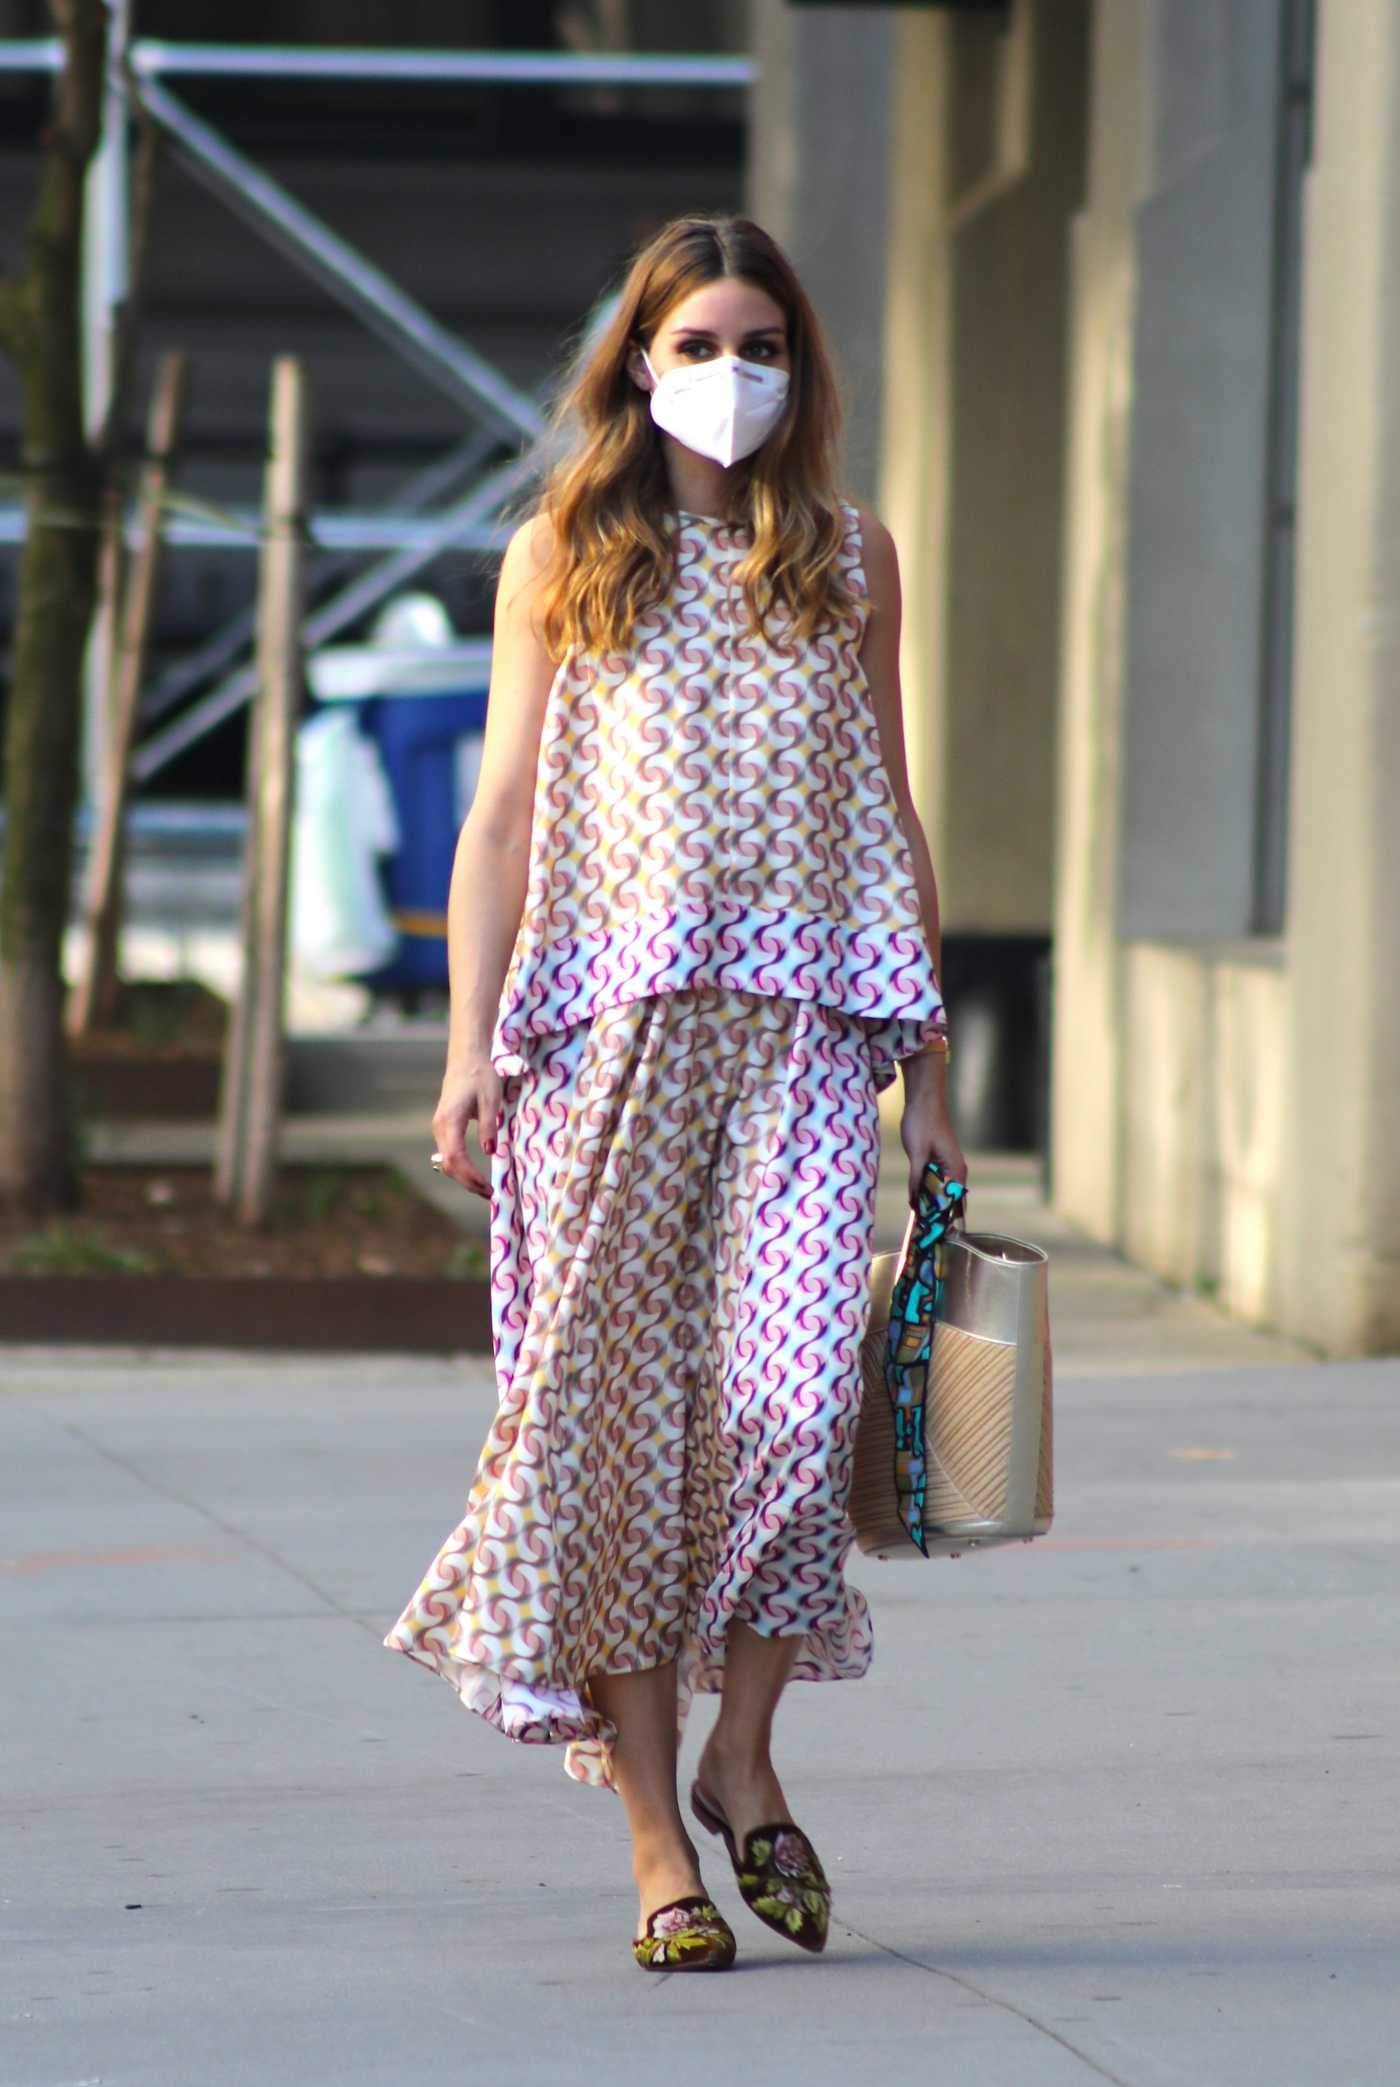 Olivia Palermo in a Protective Mask Walks at the Park in Downtown, Brooklyn 08/11/2020